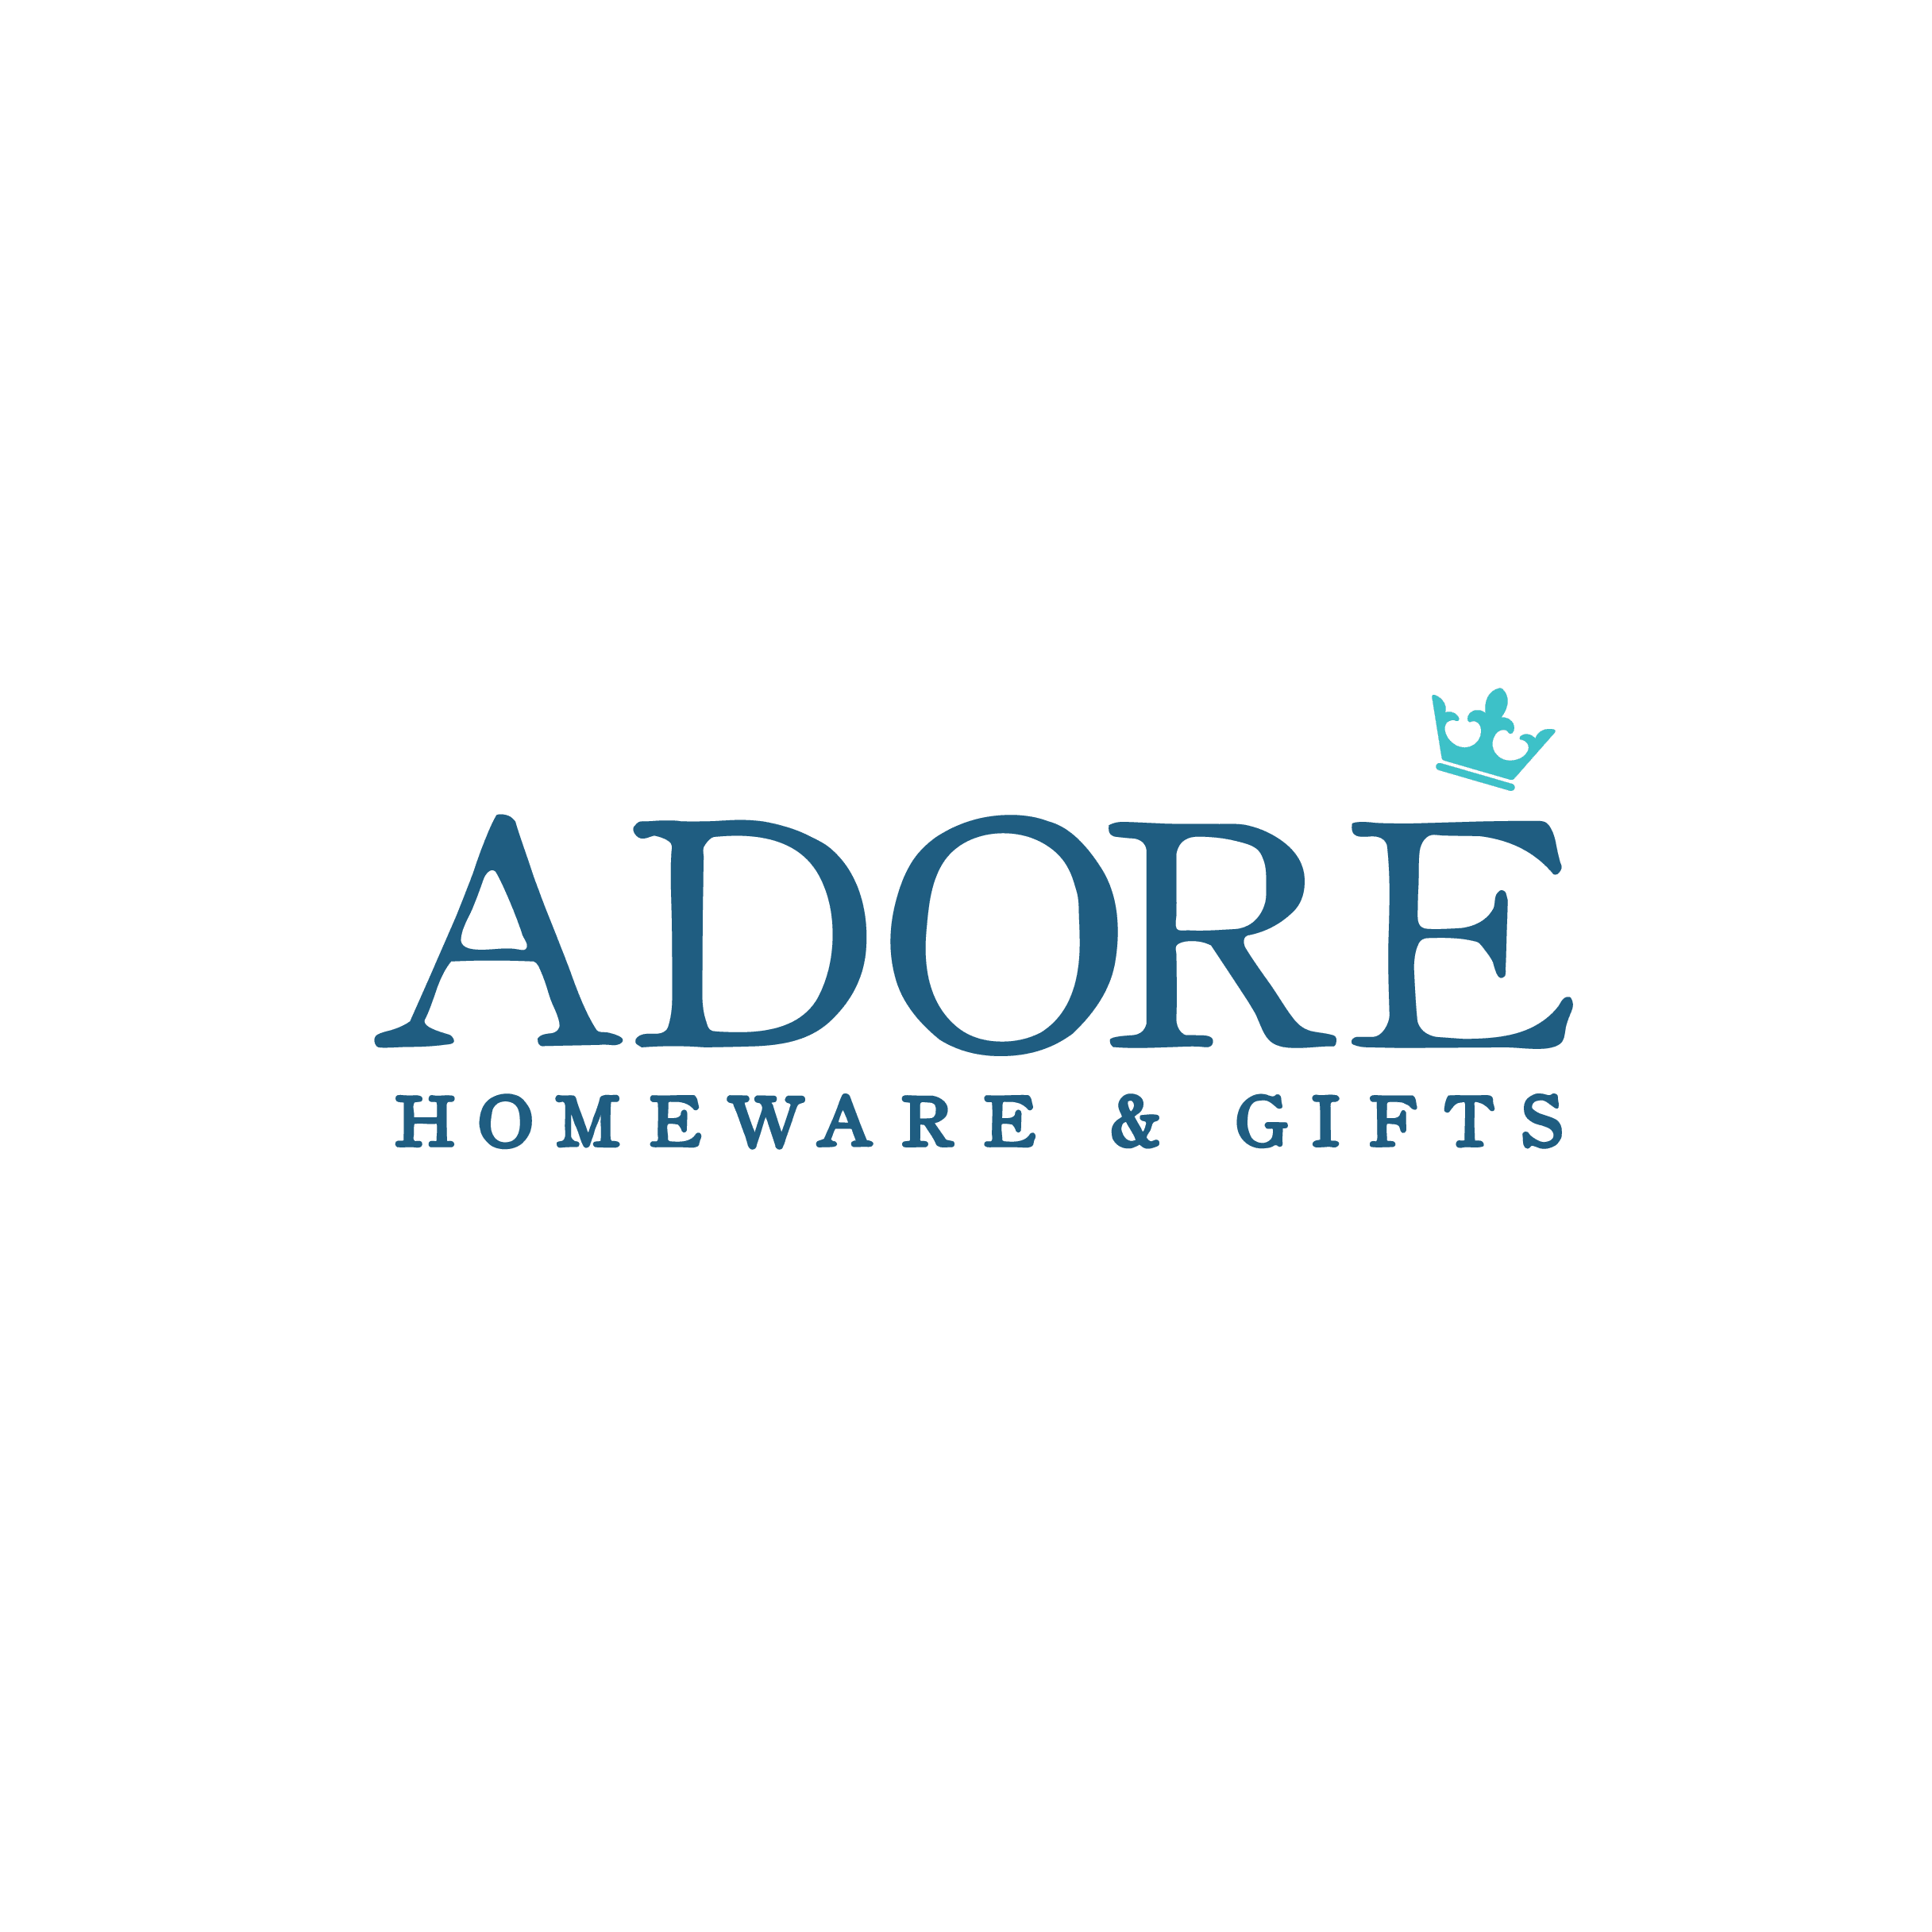 Adore Homeware & Gifts